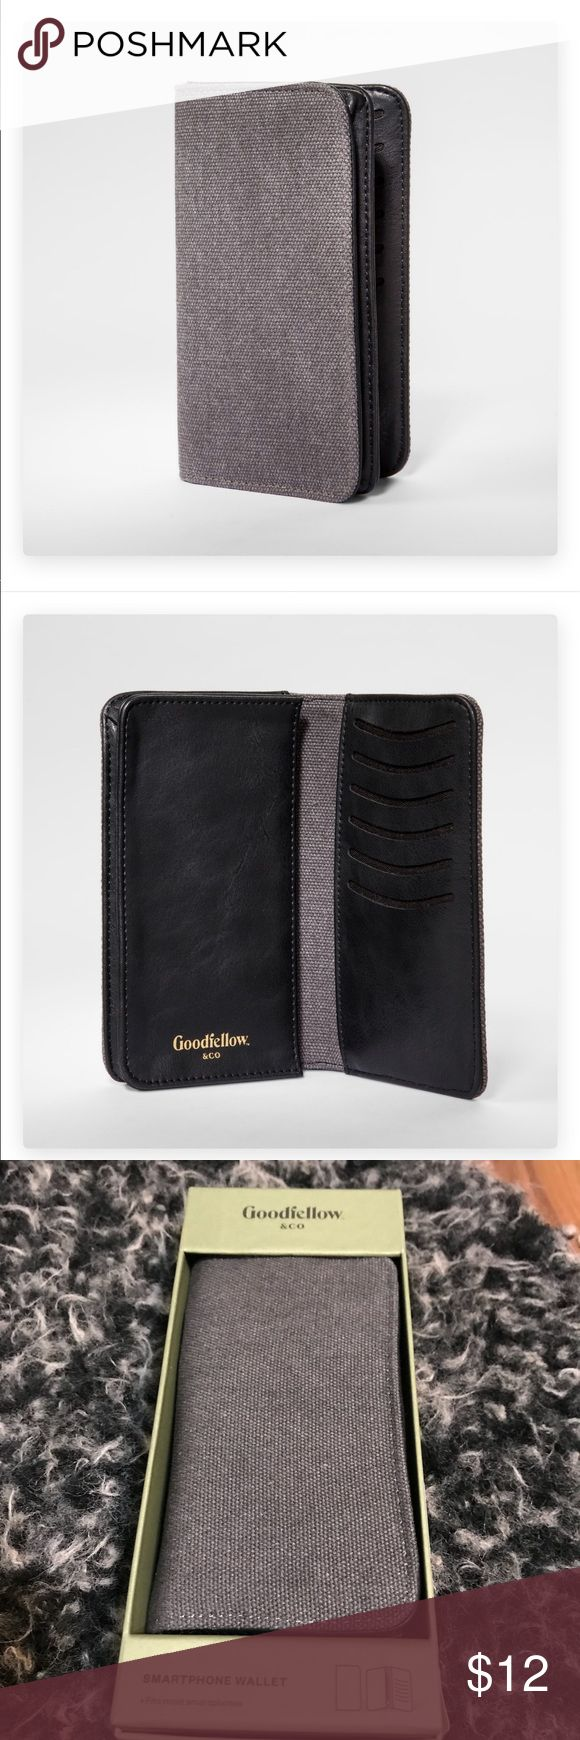 🔴 5/$25 NWT Goodfellow Men's Cellphone Wallet Keep all your important pocket contents in one place with the Phone/Card Case Wallet from Goodfellow & Co™. This spacious carrying case is perfect for stashing your phone, credit cards, ID and anything else you need to hold. The slim profile is small enough to fit in a pocket or bag pouch, and the protective cotton shell helps hold things safely and securely.  6 in x 3.6 in case size fits most smartphones Features pockets for up to 6 cards…